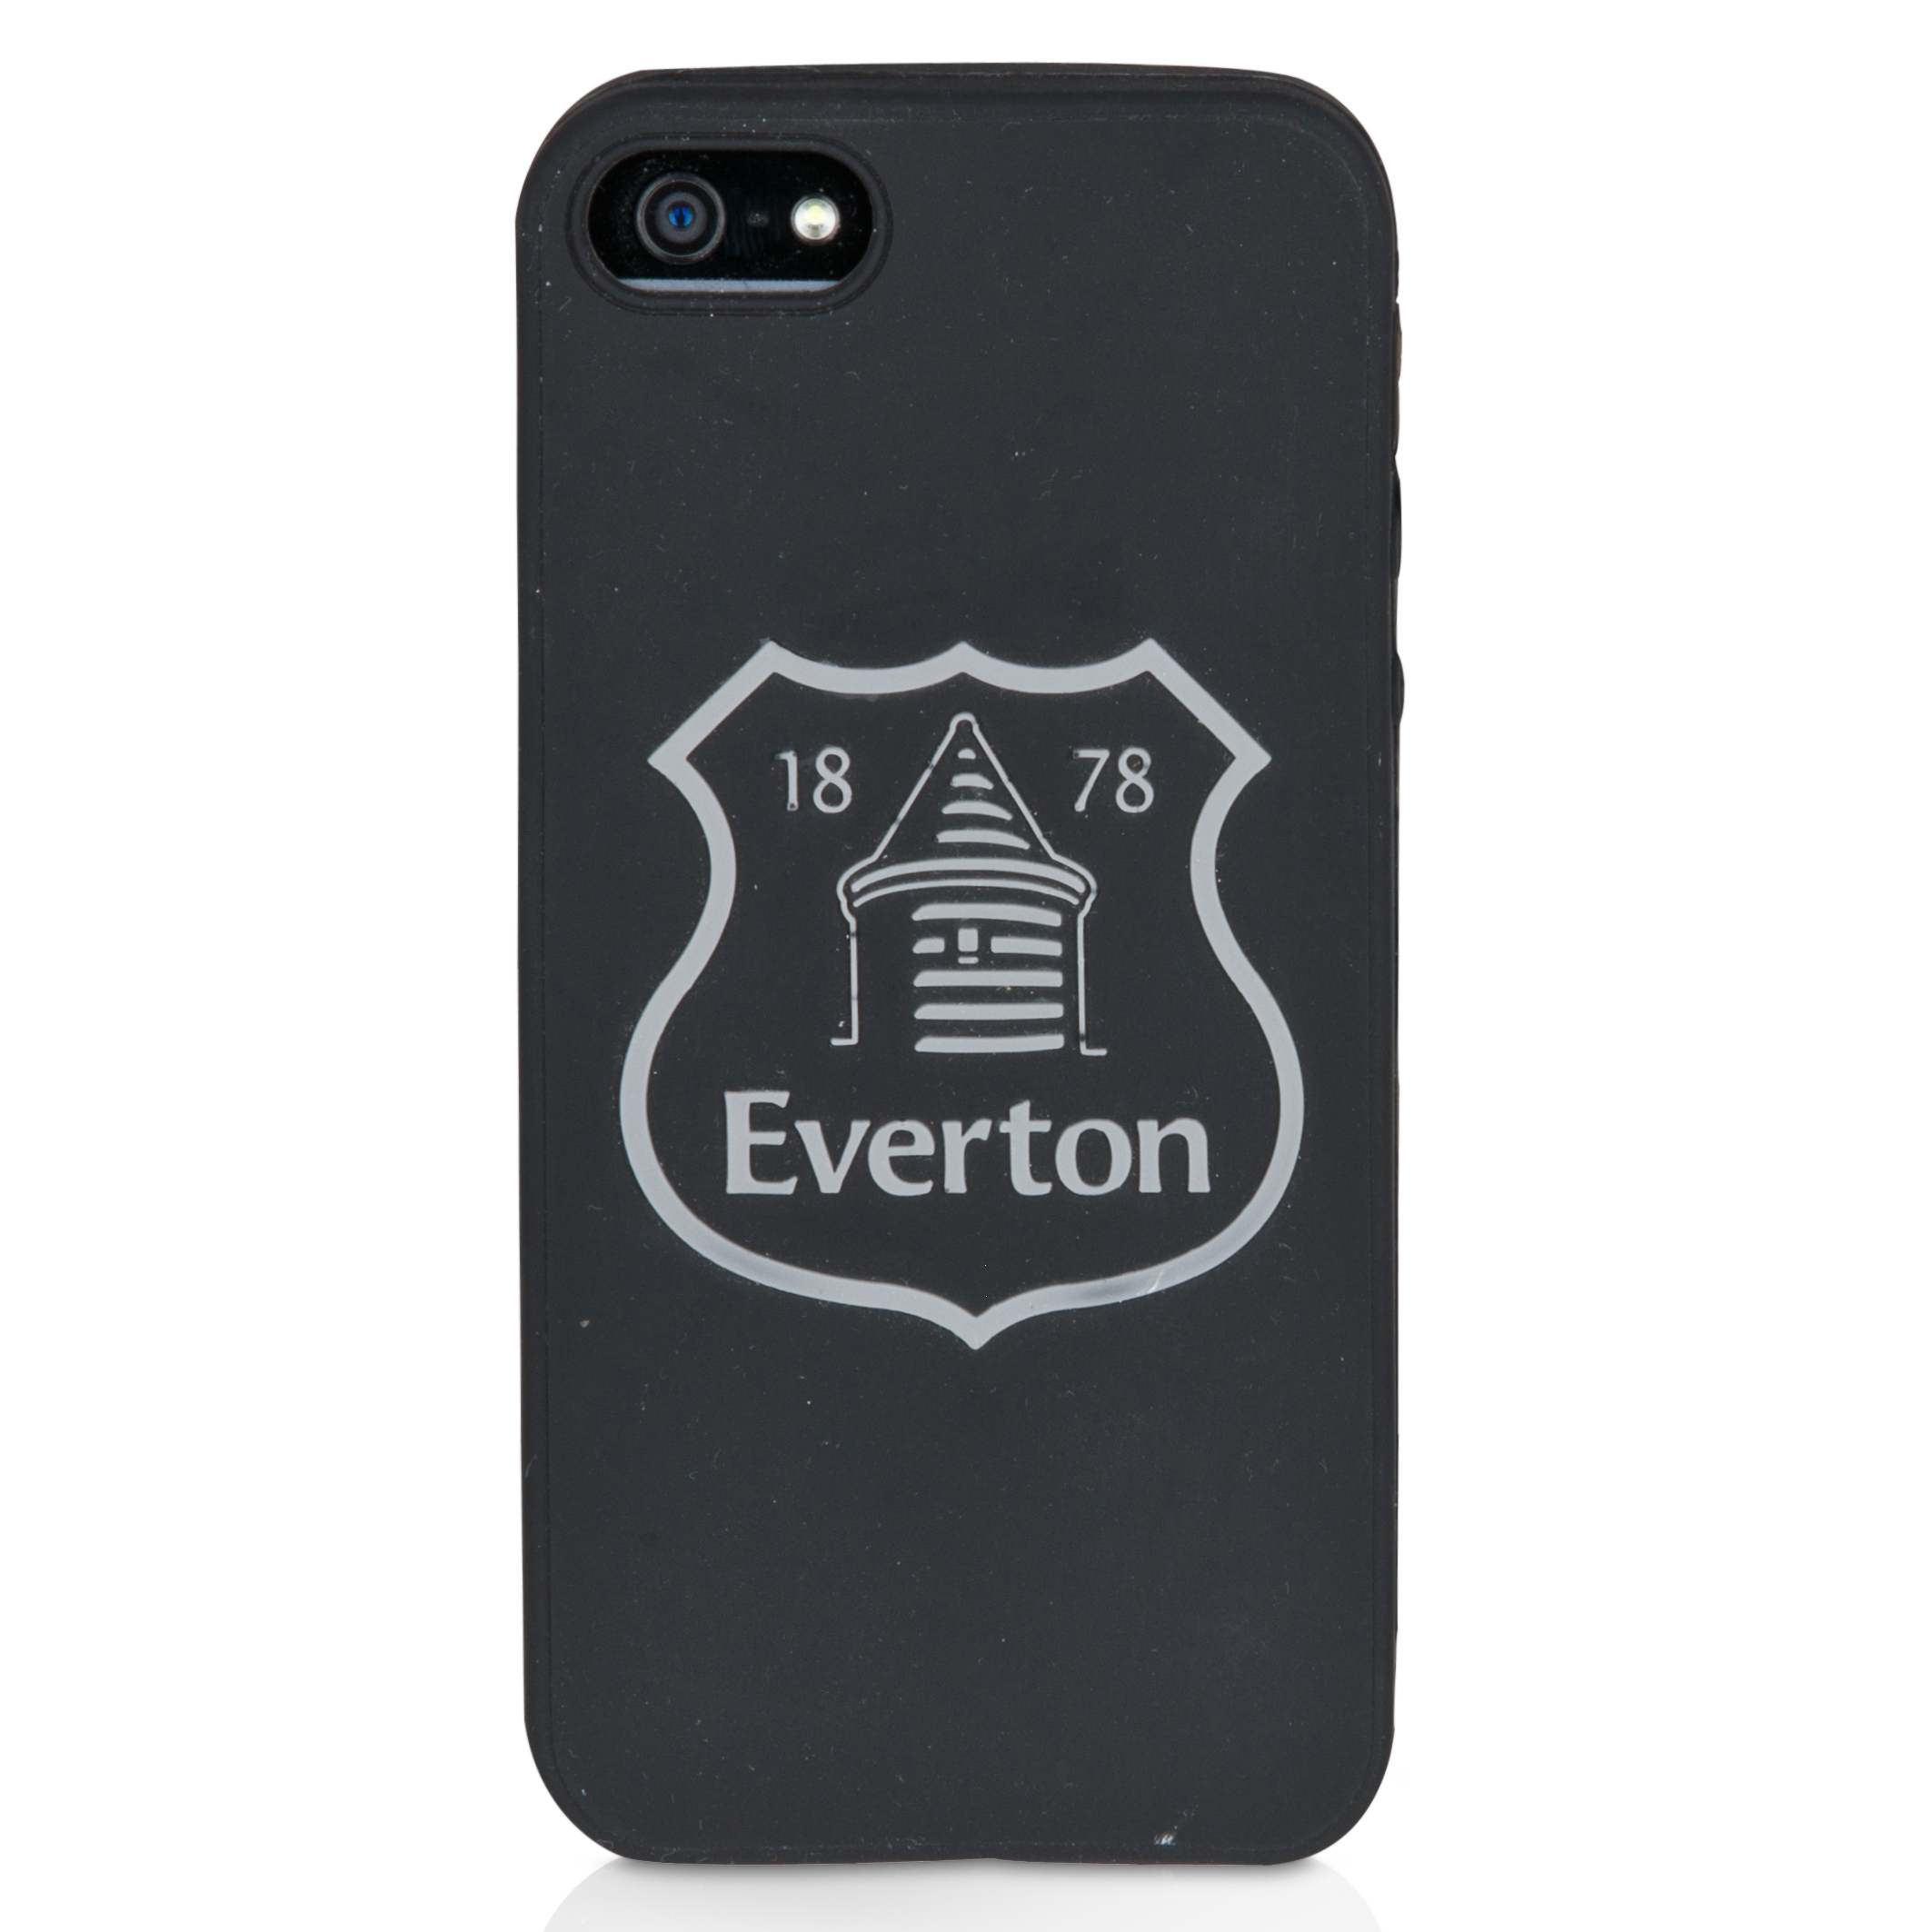 Everton Crest iphone 5th Generation Silicon Skin